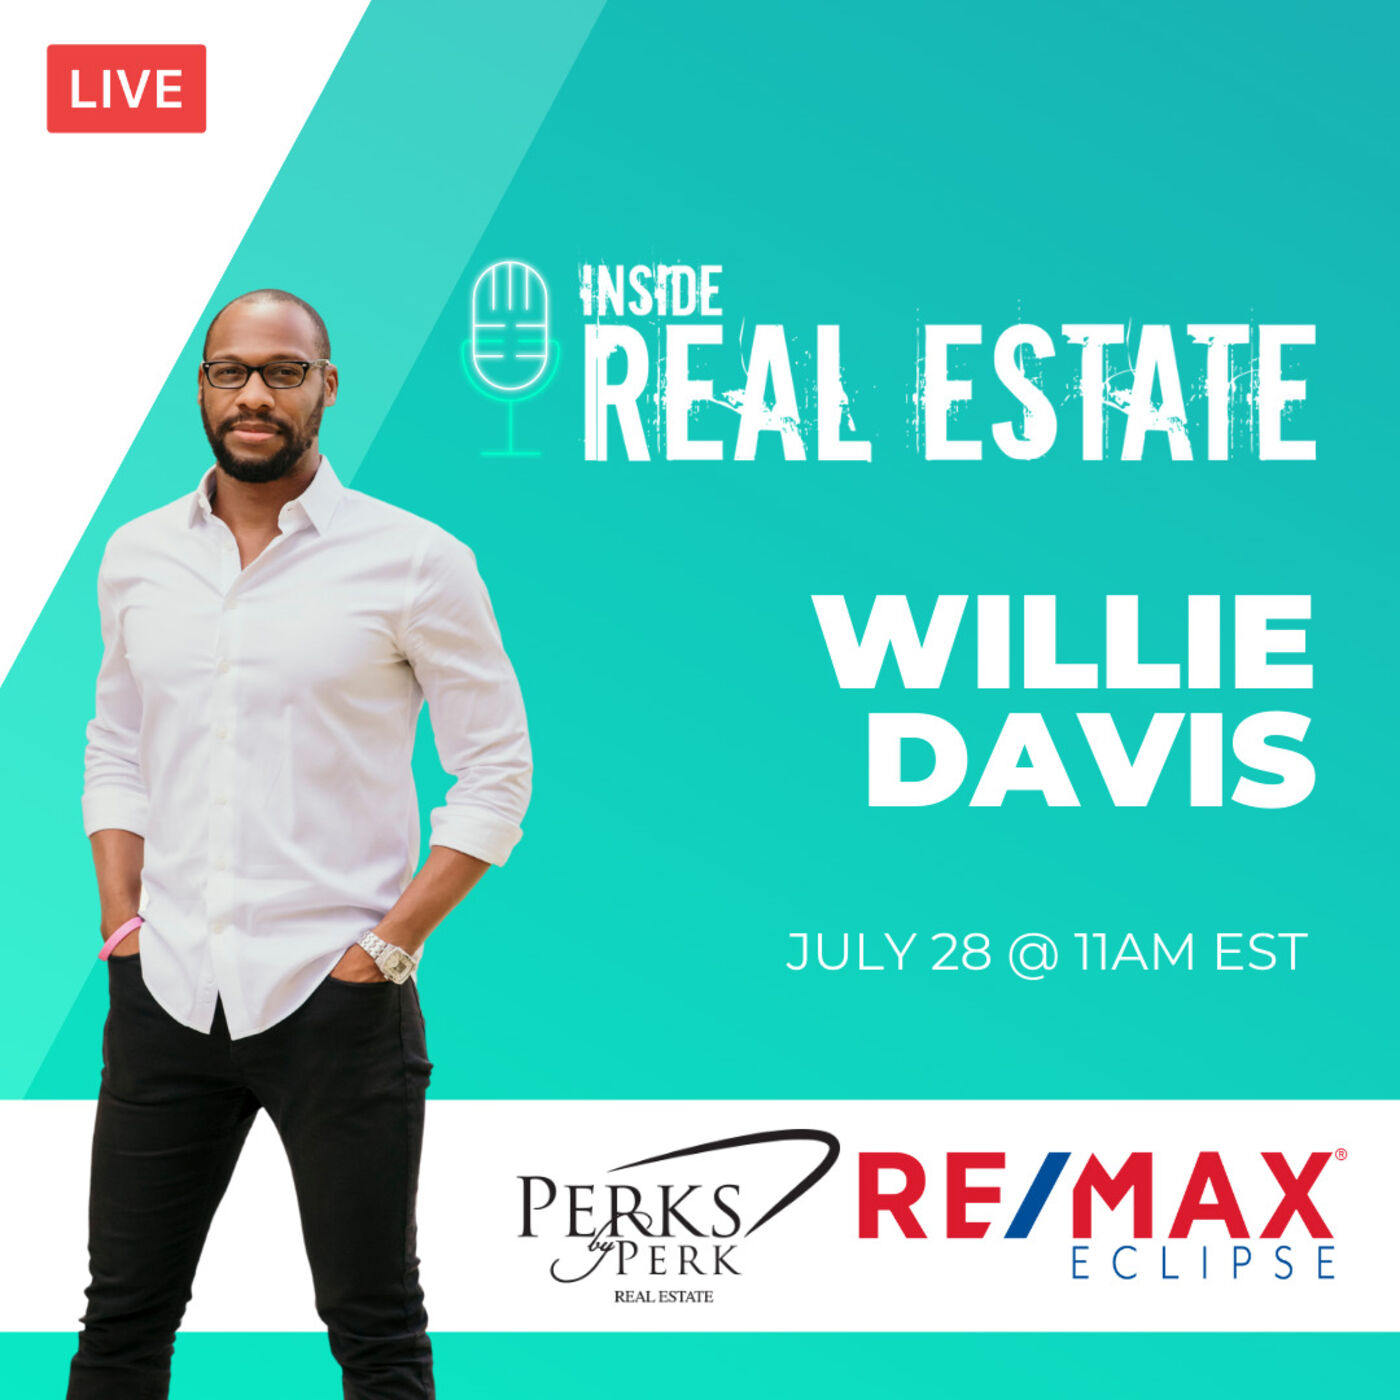 Willie Davis, Perks by Perk Real Estate, Re/Max Eclipse - Minorities, Market, and More